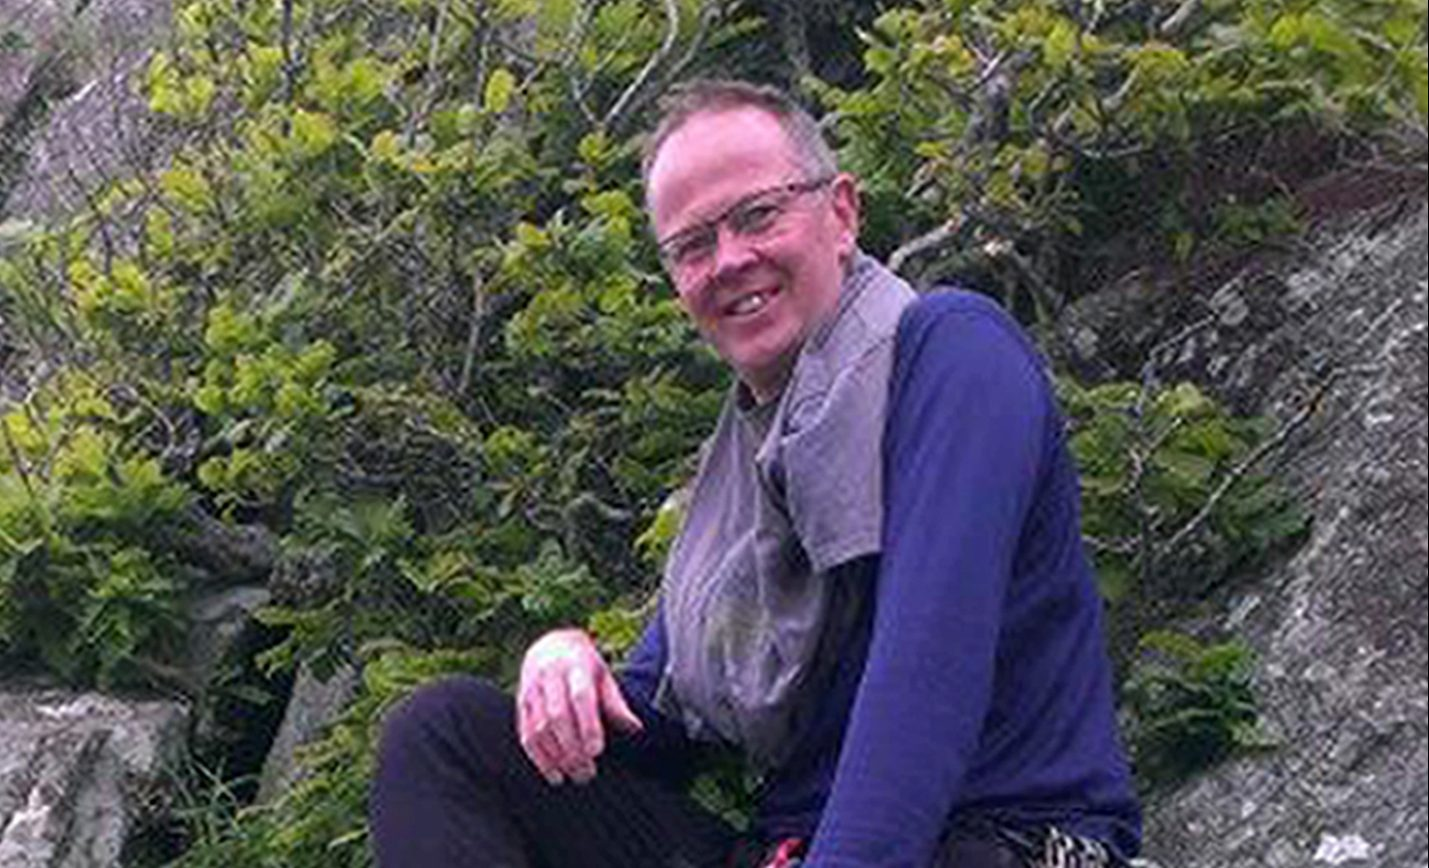 Fraser Campbell died after falling on the north face of Ben Nevis in the Highlands on Friday October 7.